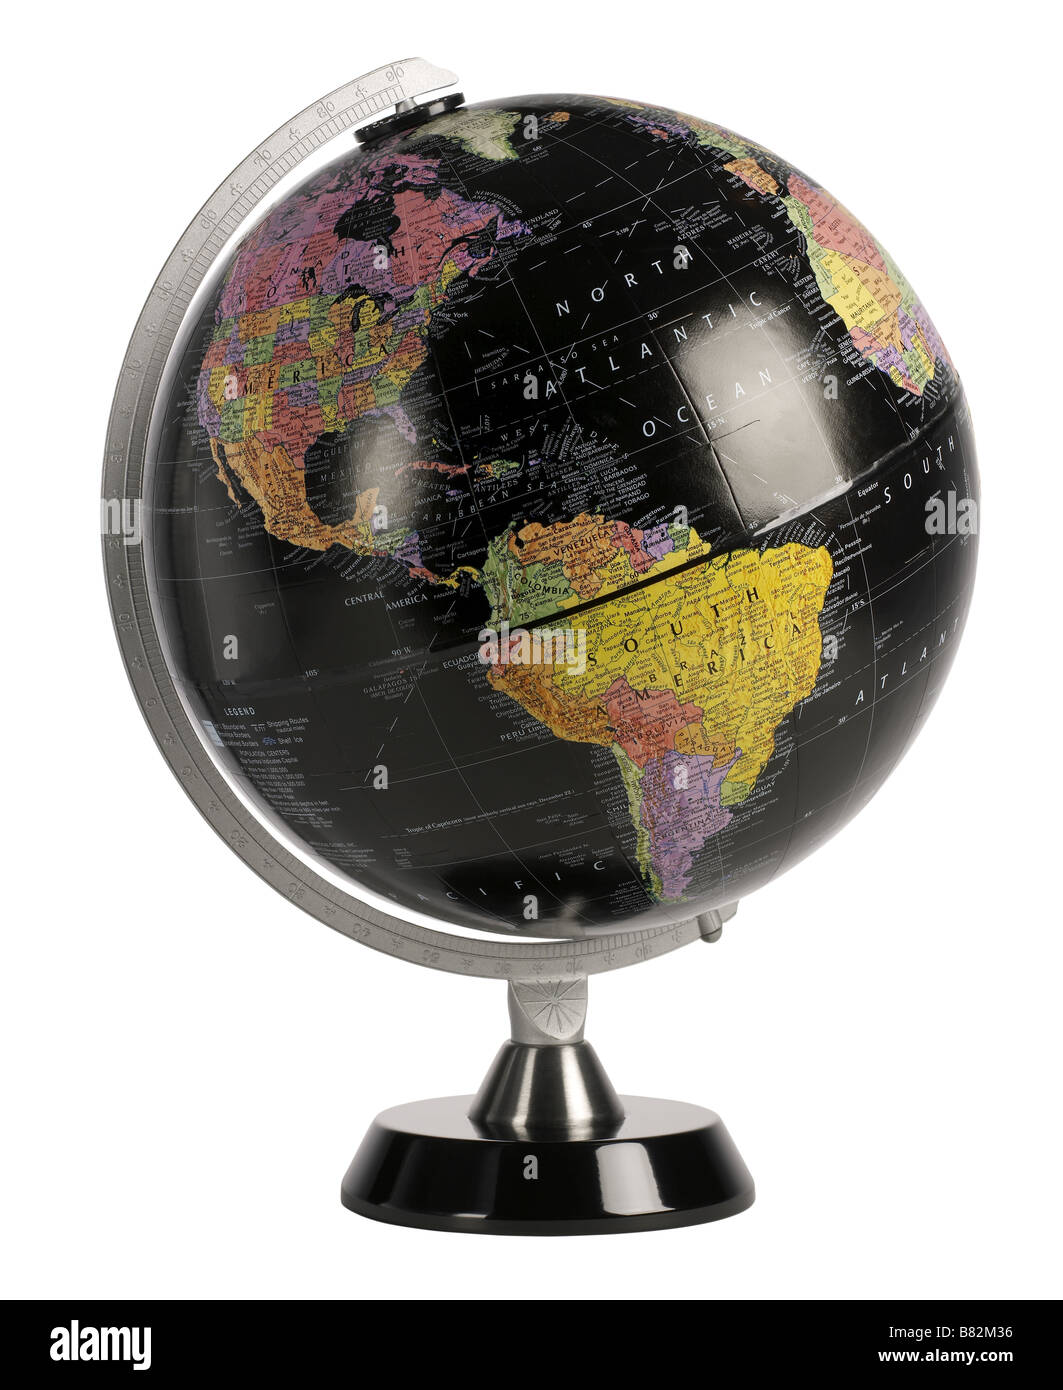 Black World Globe Photo Stock